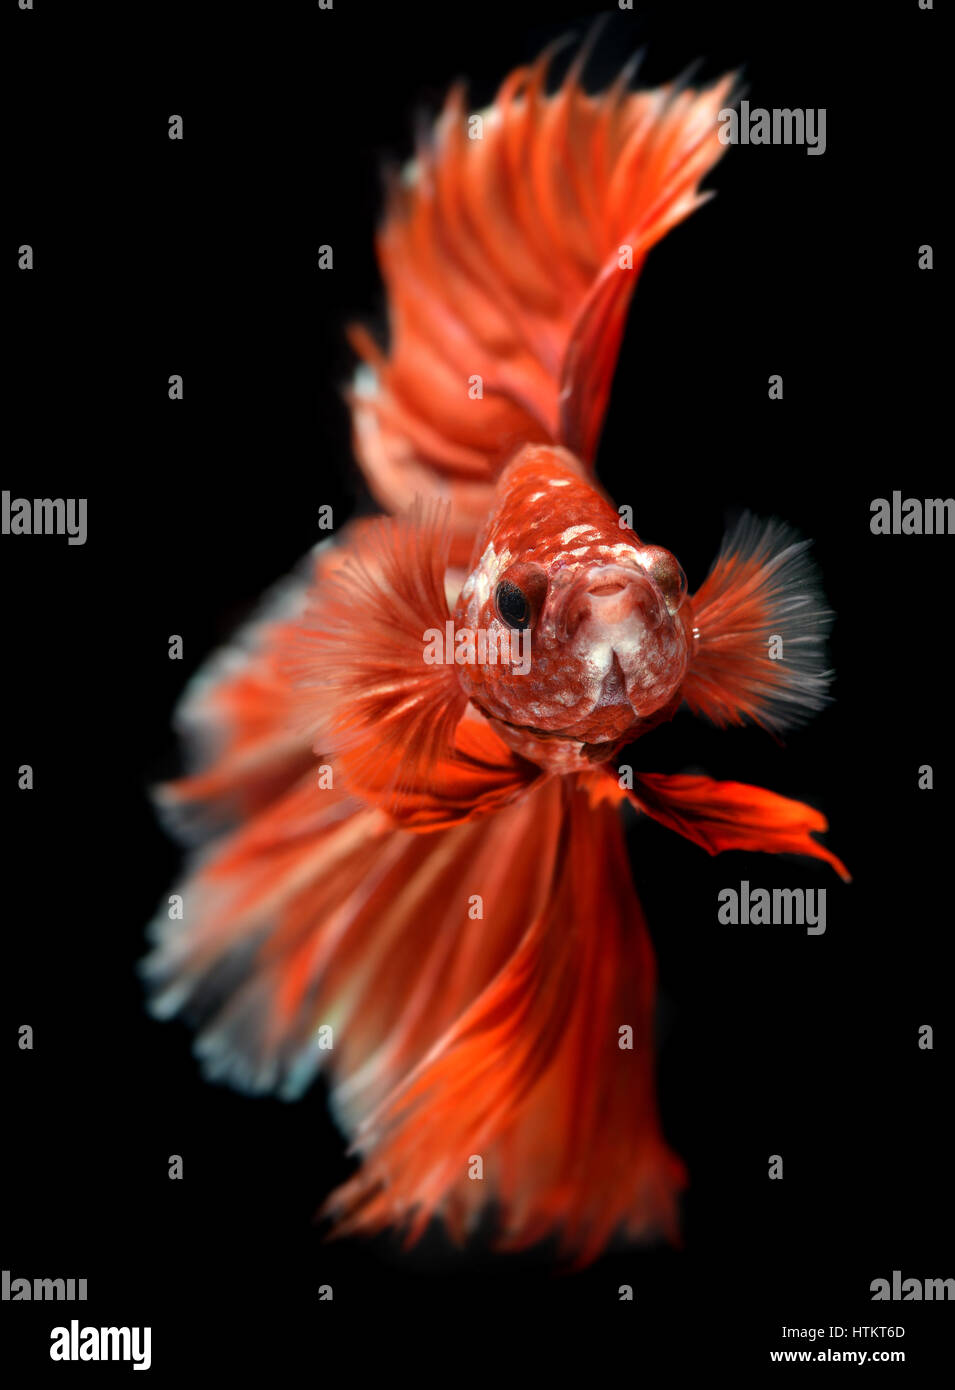 Fish Stock Photos & Fish Stock Images - Alamy